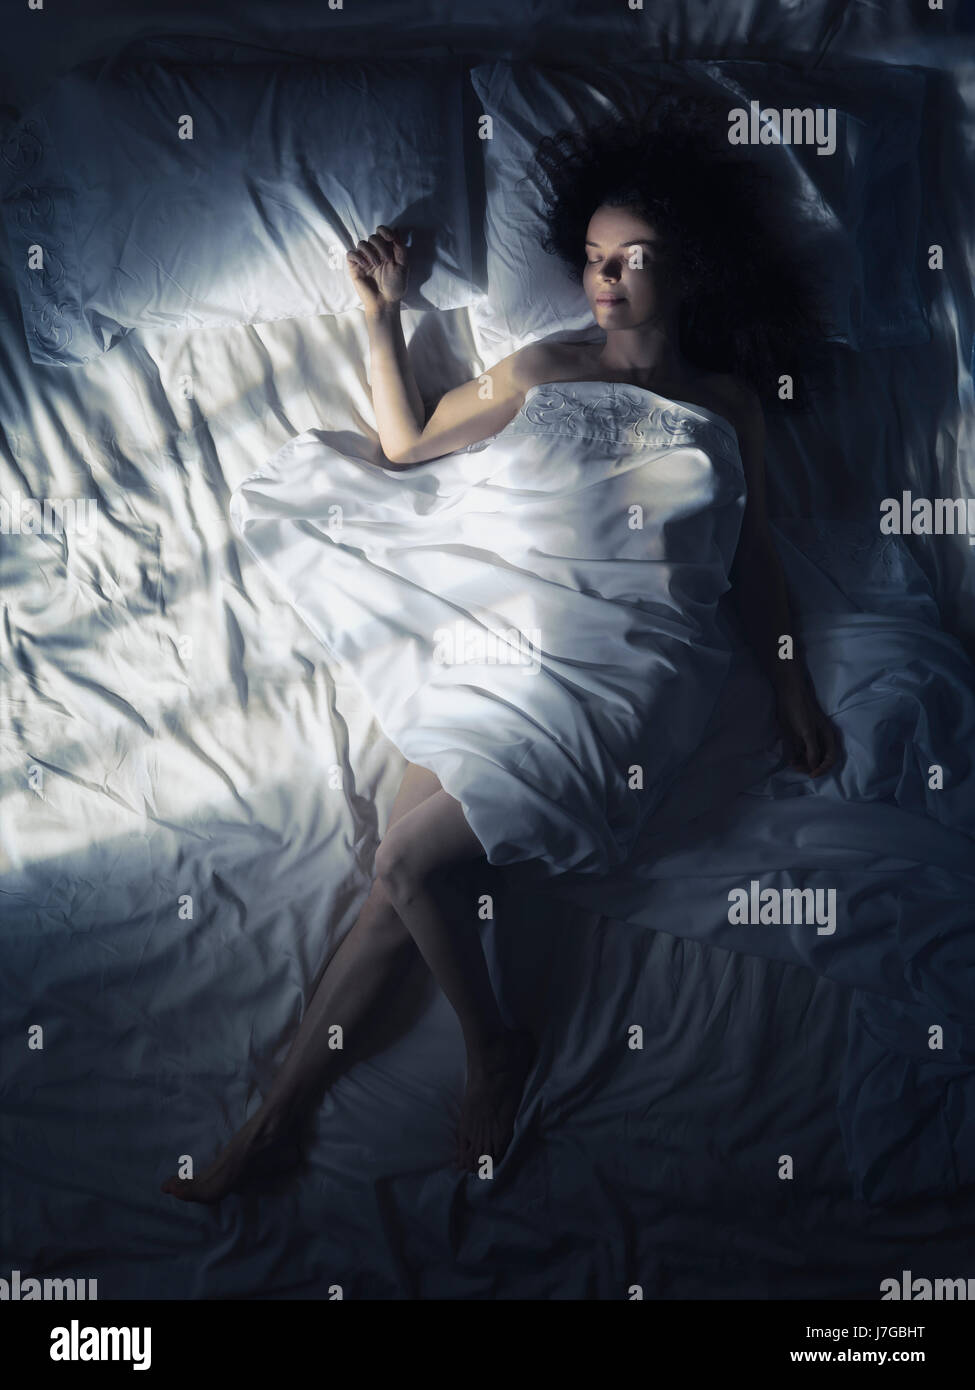 Dark Bedroom At Night young woman sleeping alone in bed at night in dark bedroom, lit